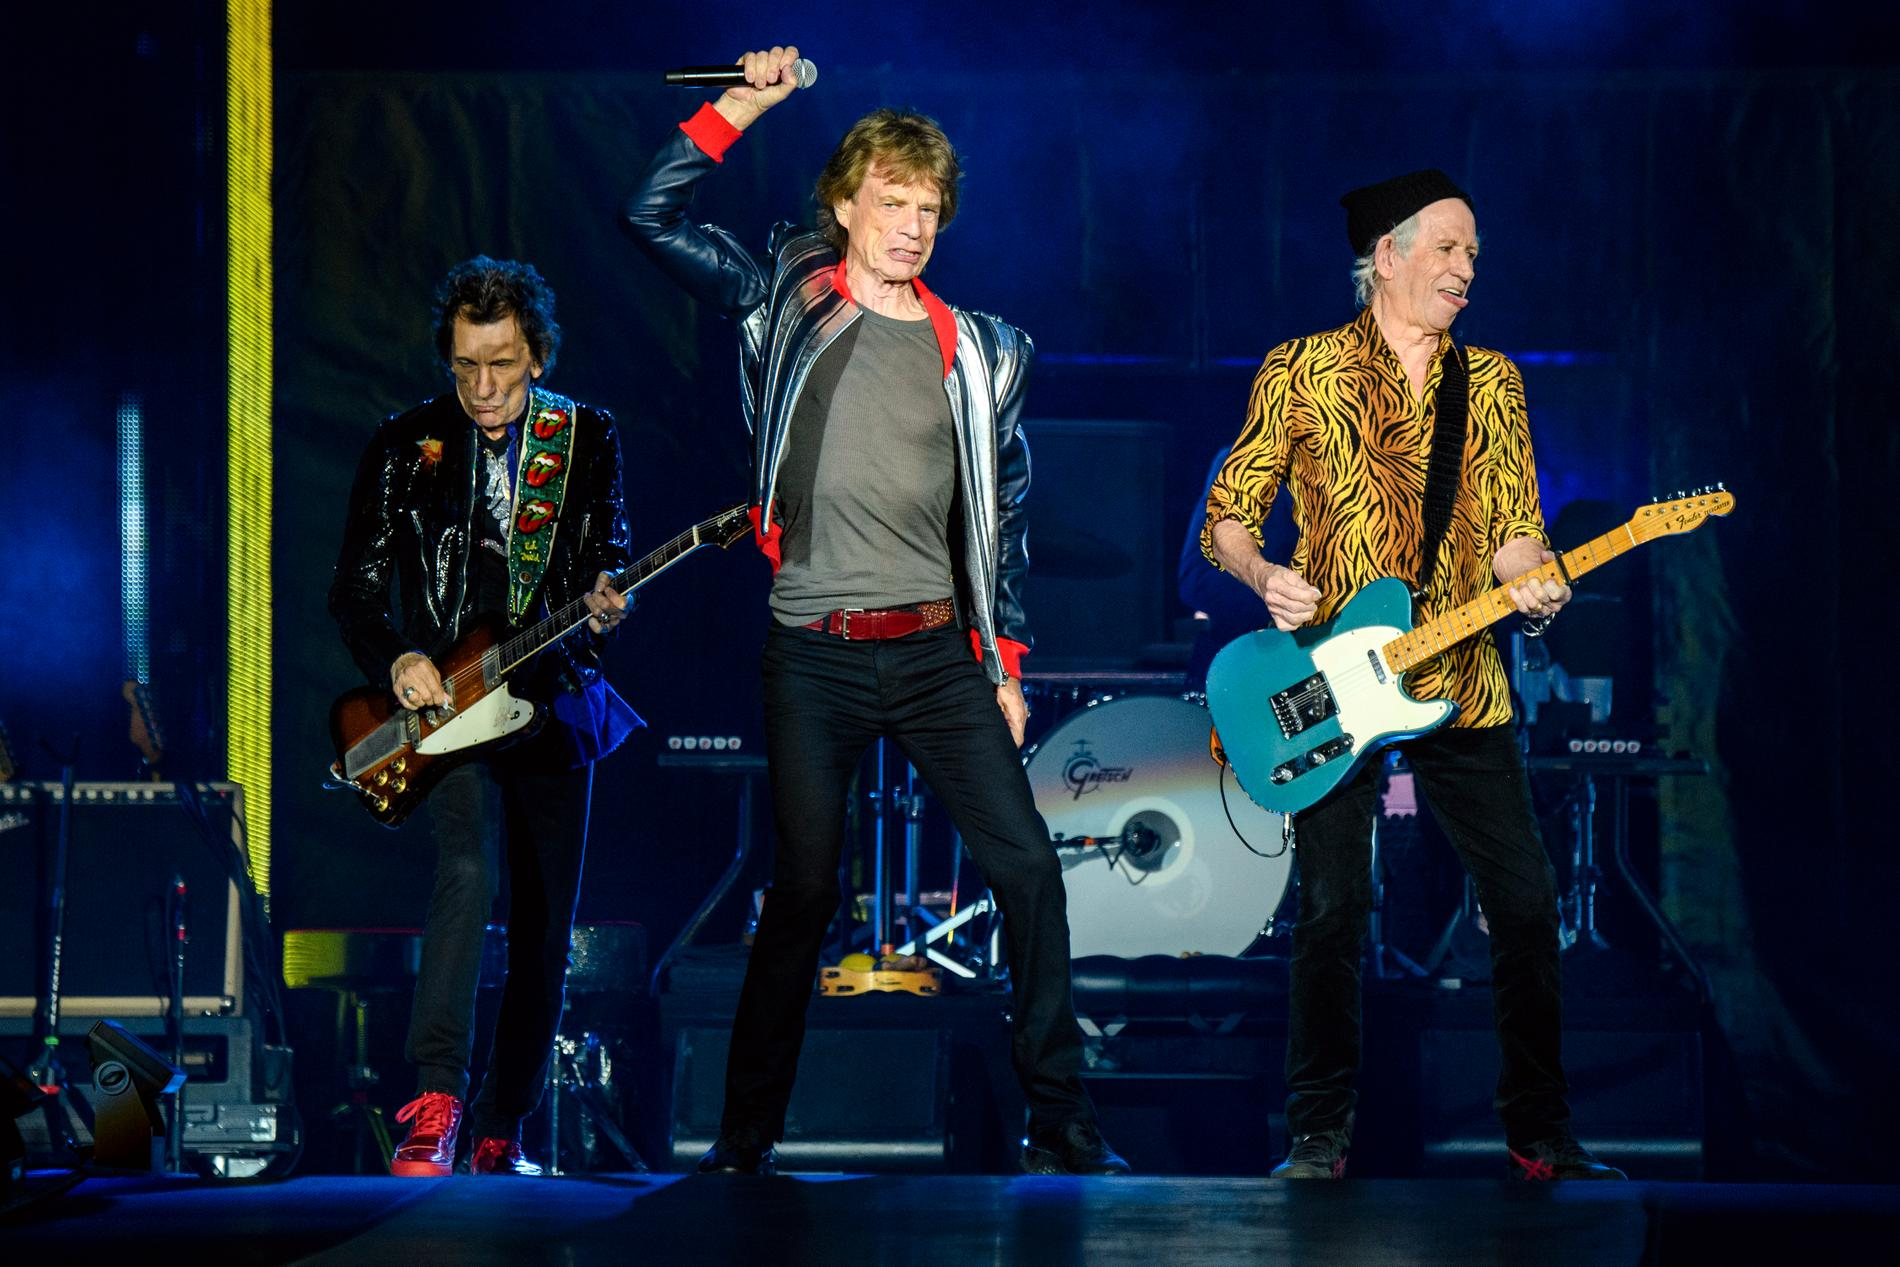 Ronnie Wood, Mick Jagger och Keith Richards på The Dome at America's Center i St. Louis.